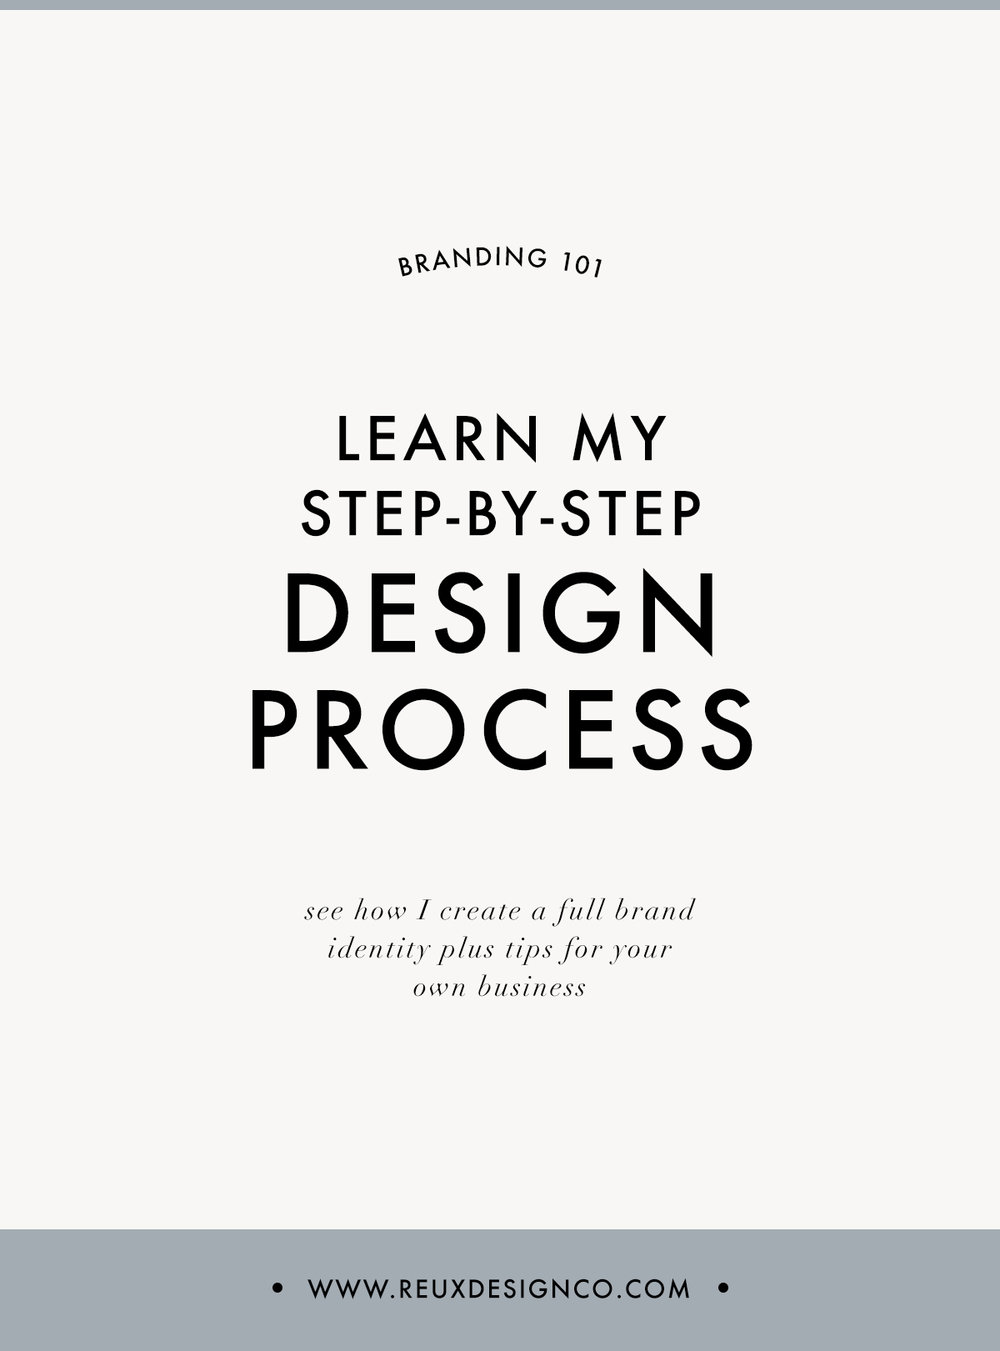 See my entire branding design process | Reux Design Co.